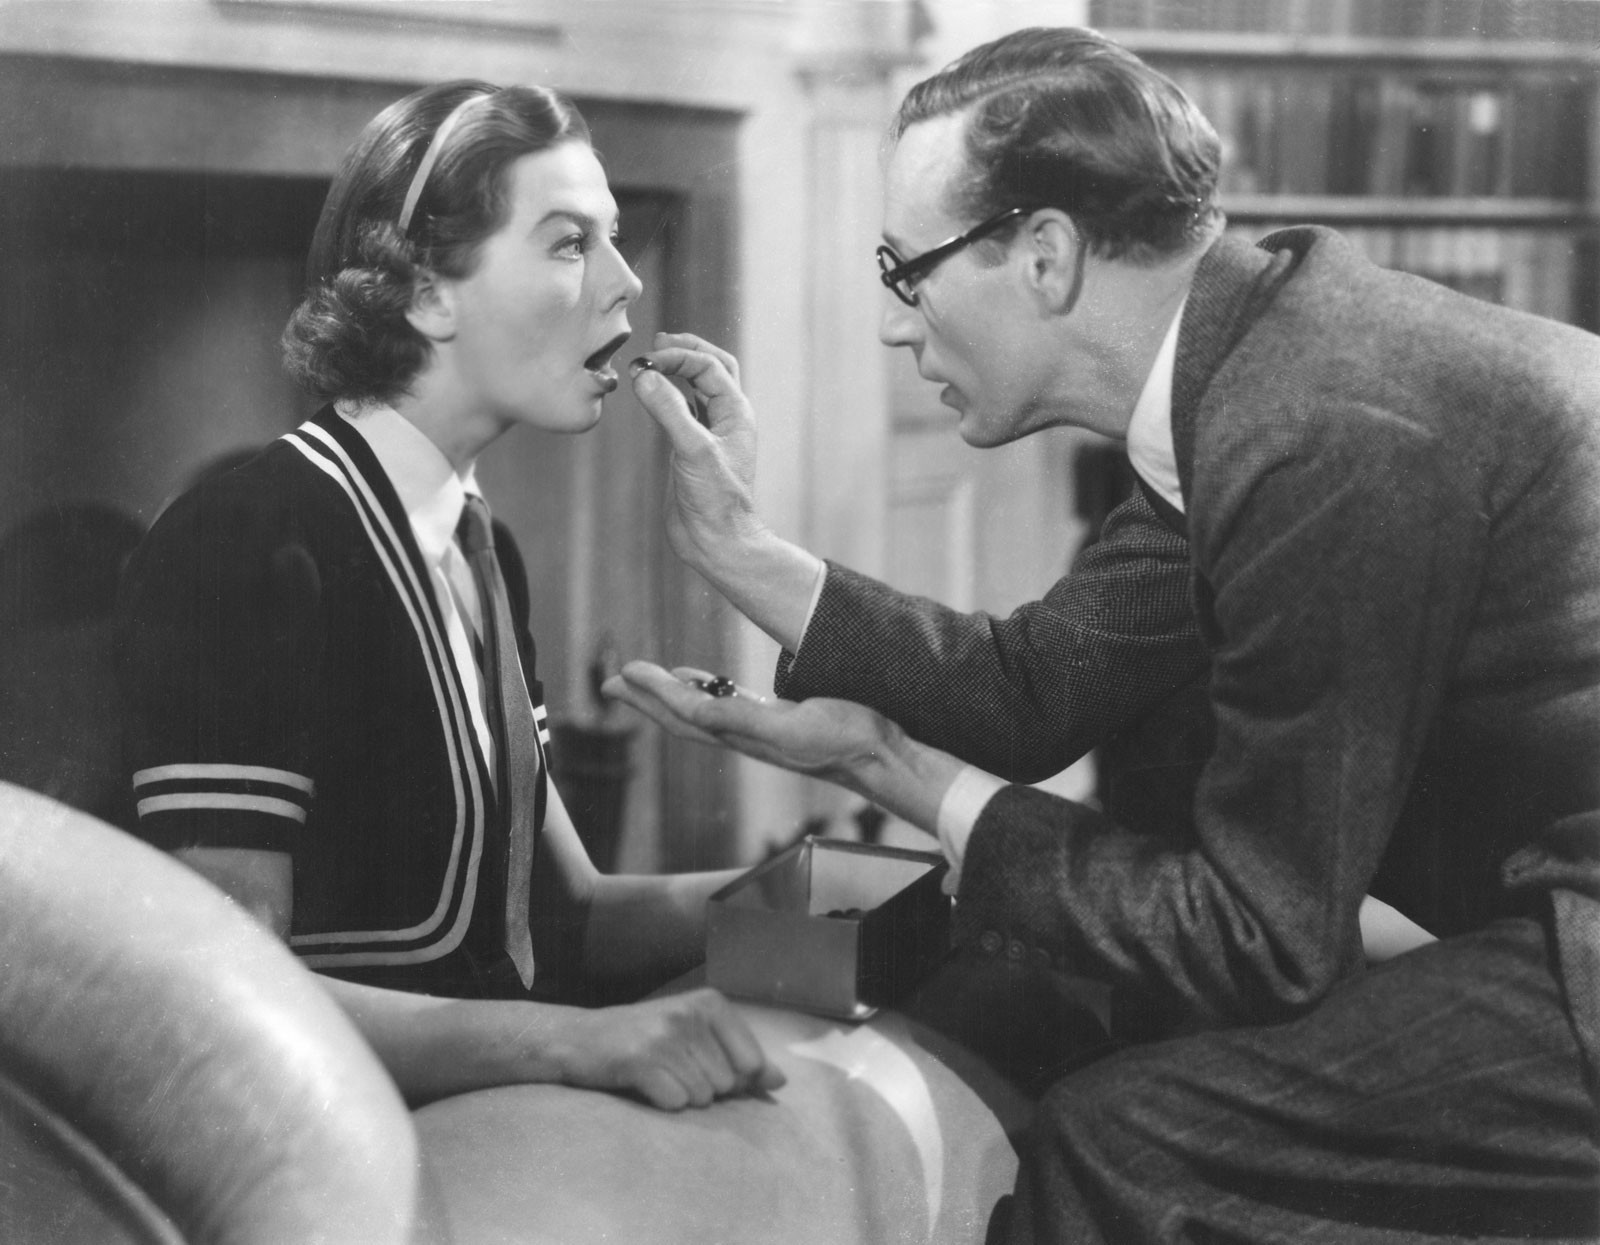 A scene from the play in which Henry Higgins attempts to improve Eliza's accent by making her speak with marbles over her tongue. A tried and tested technique used to treat speech impairments such as stuttering.